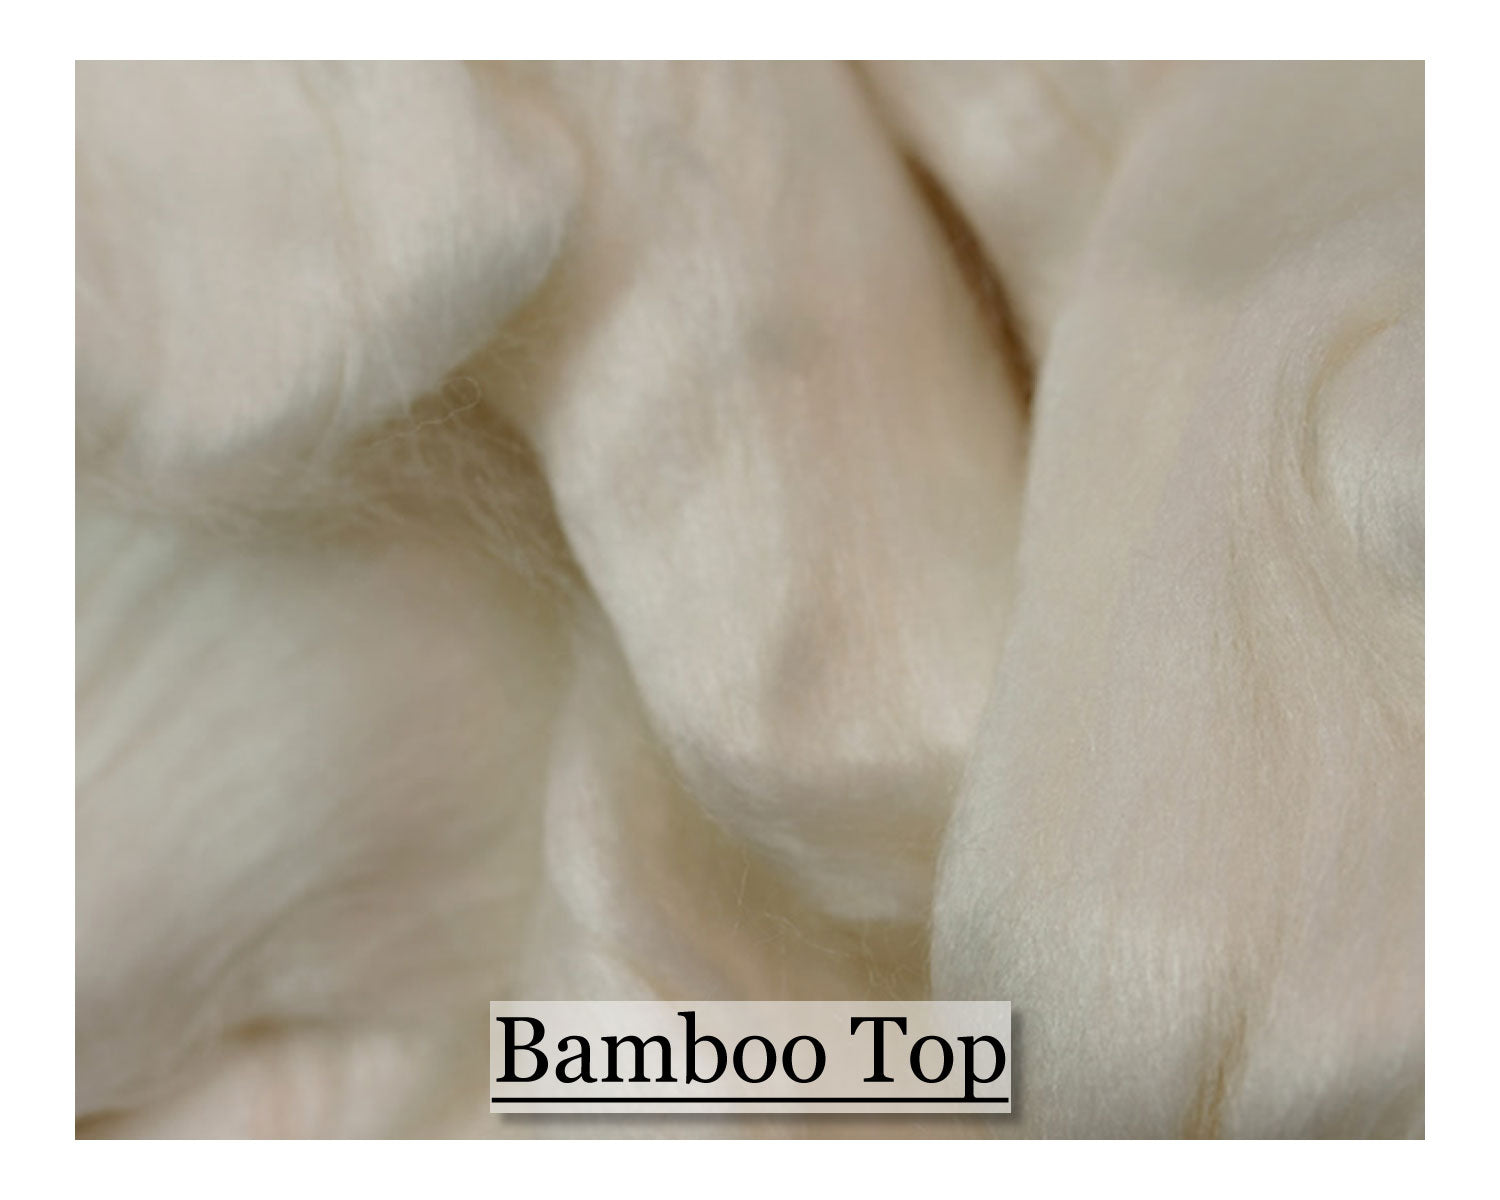 Bamboo Top - 8 oz